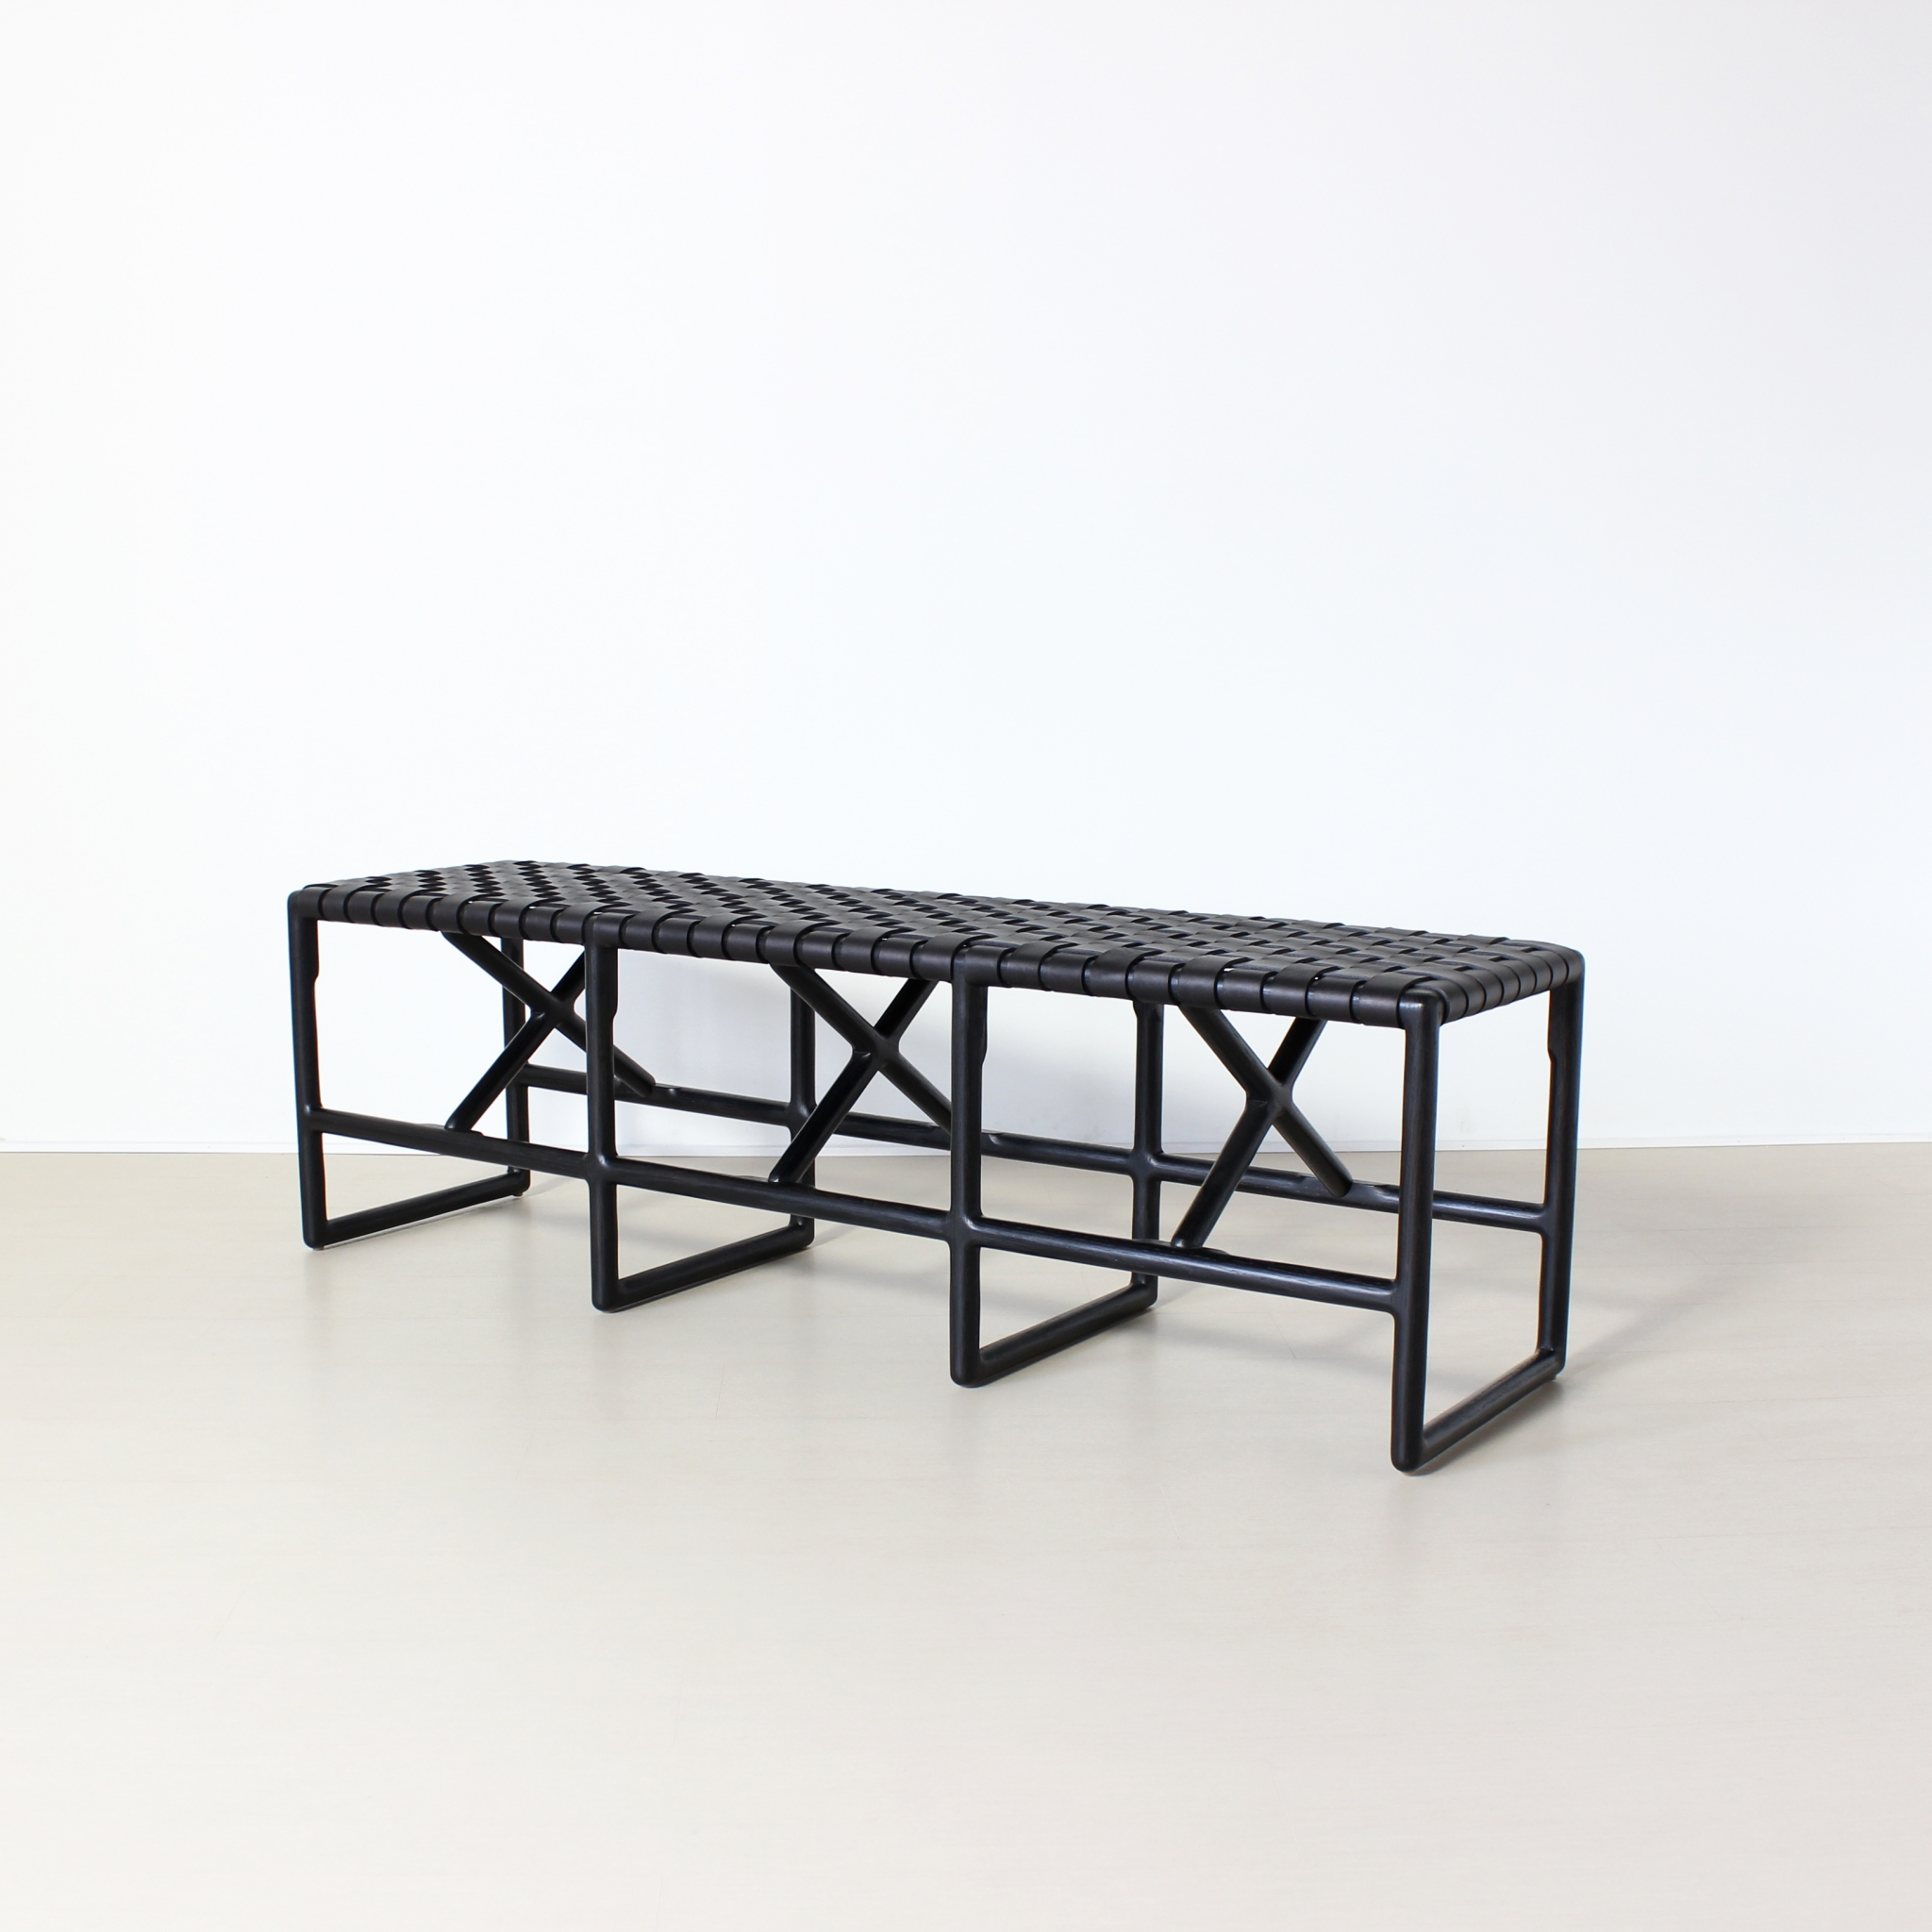 Enjoyable Montgomery Bench In Stock Black Inzonedesignstudio Interior Chair Design Inzonedesignstudiocom